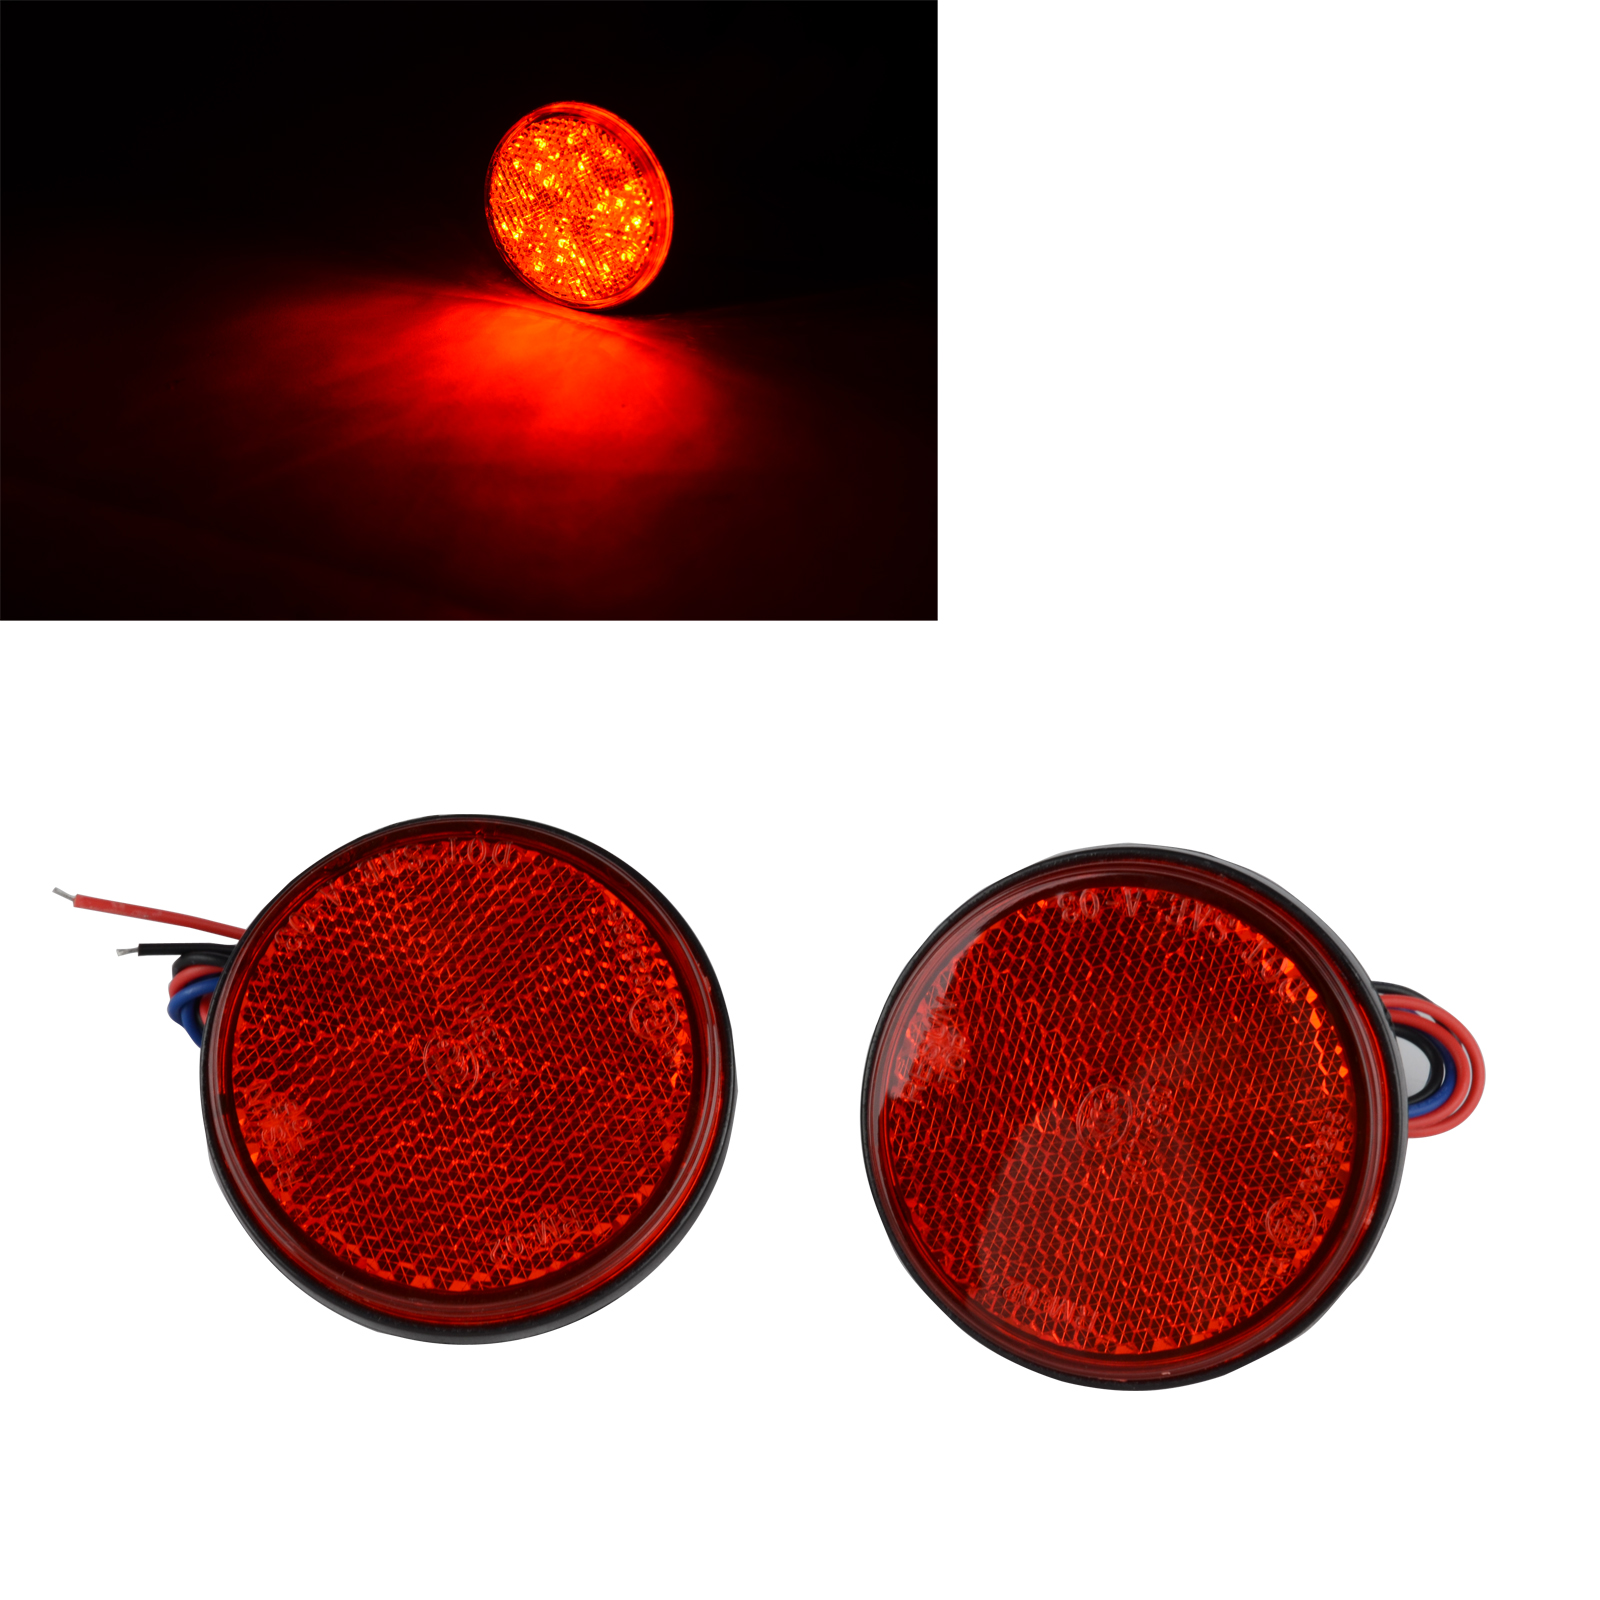 2x 12V Round Rear Turn Signal Brake Stop Tail Light Red LED Reflector Red Lens